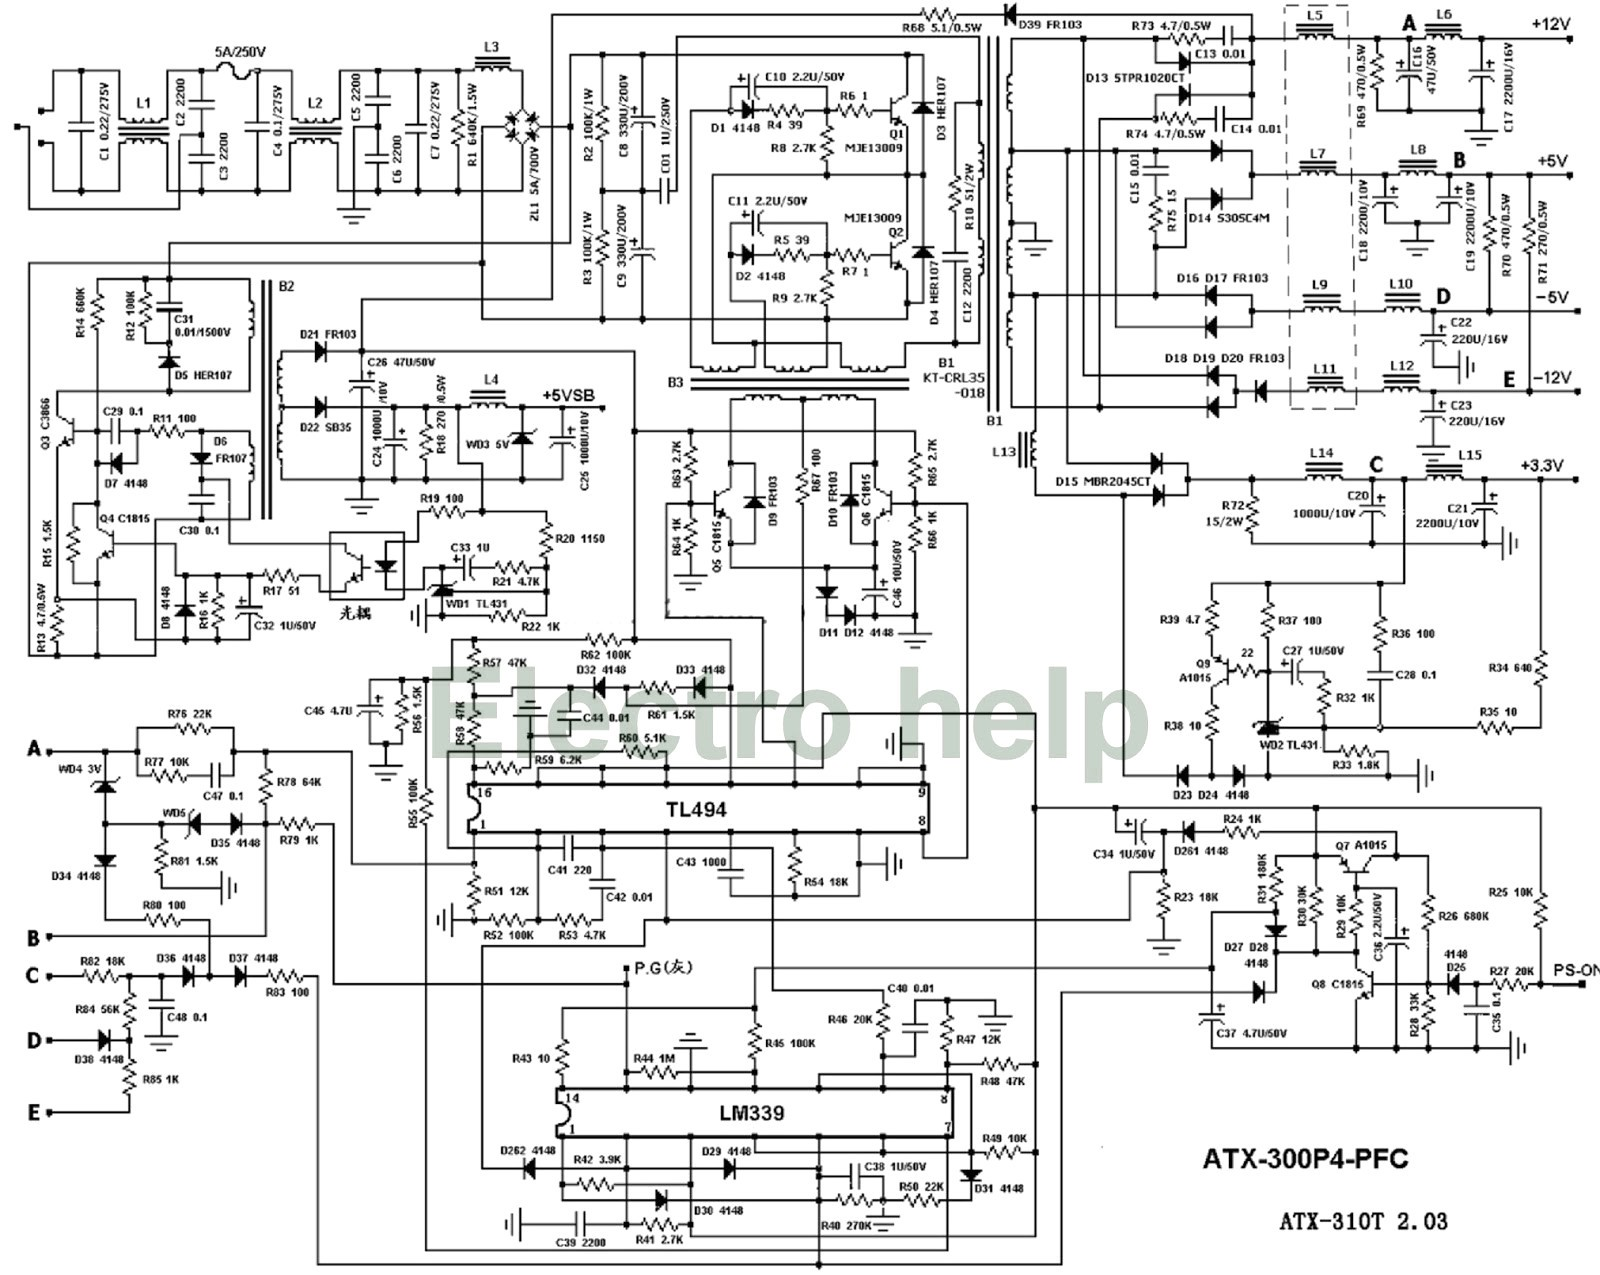 67 mustang wire harness free download wiring diagram schematic